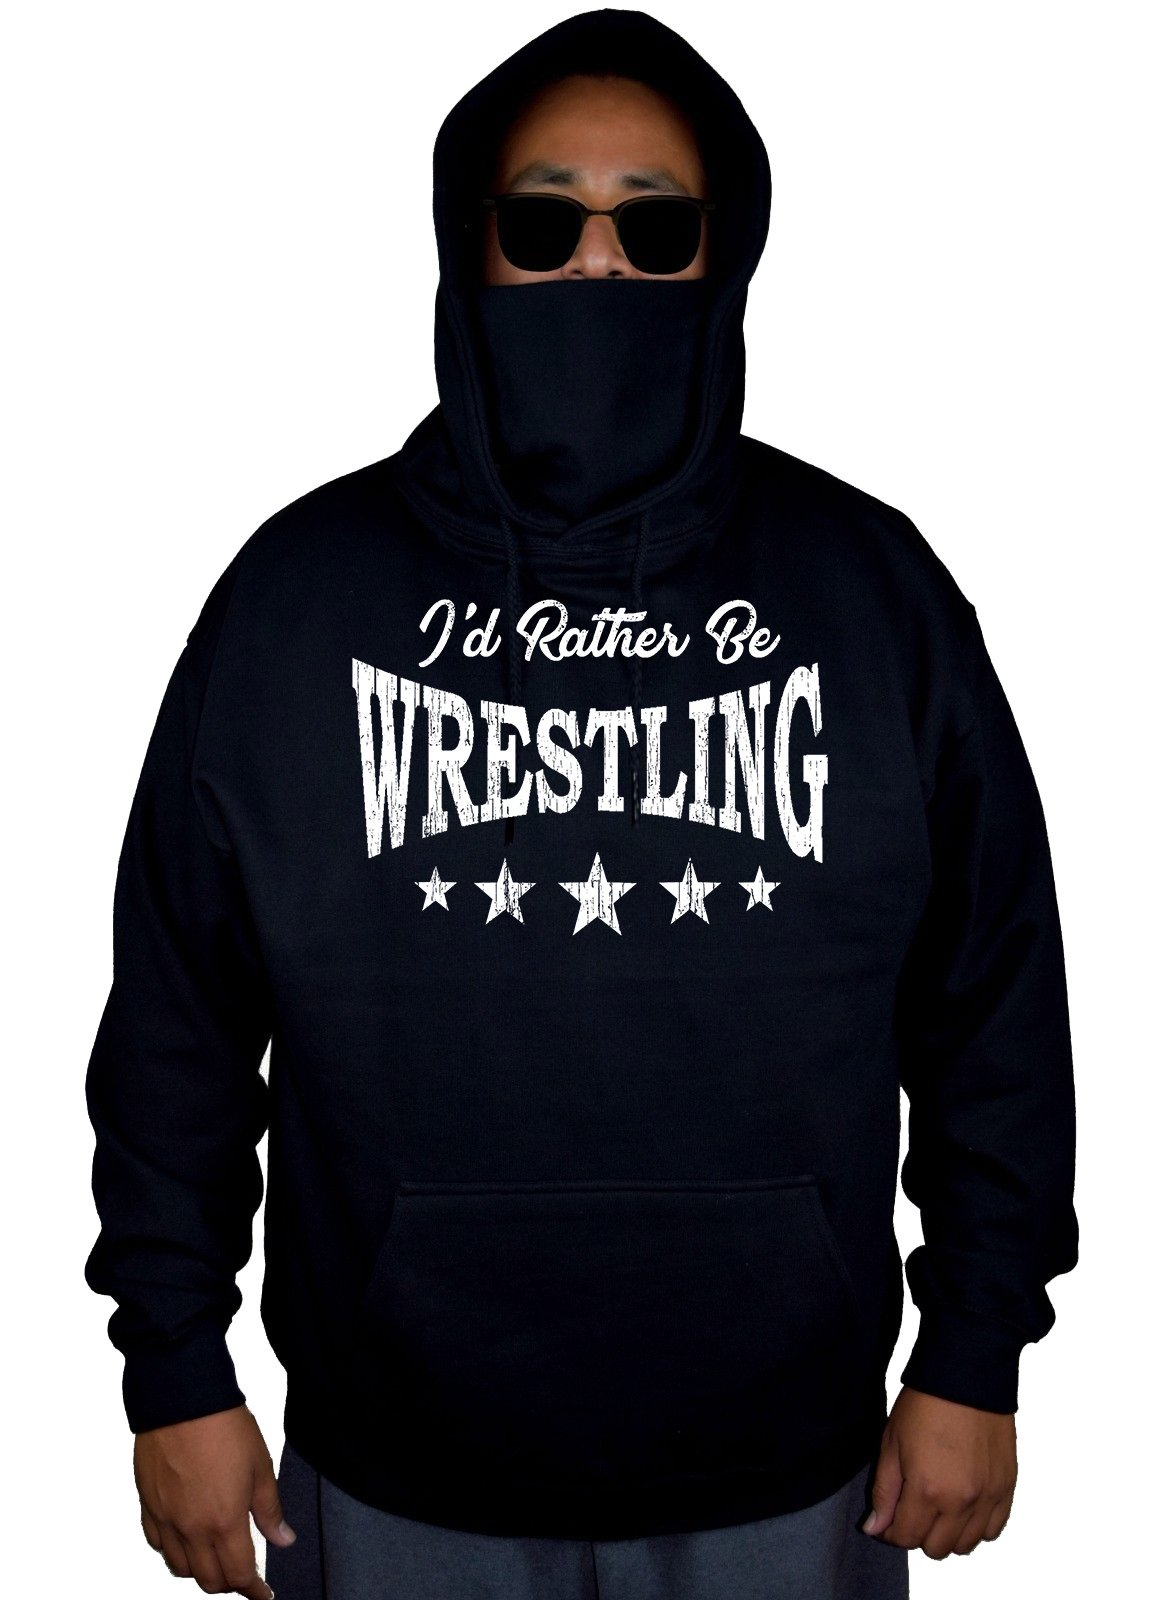 Men's I'd Rather Be Wrestling Black Mask Hoodie Sweater Large by Interstate Apparel